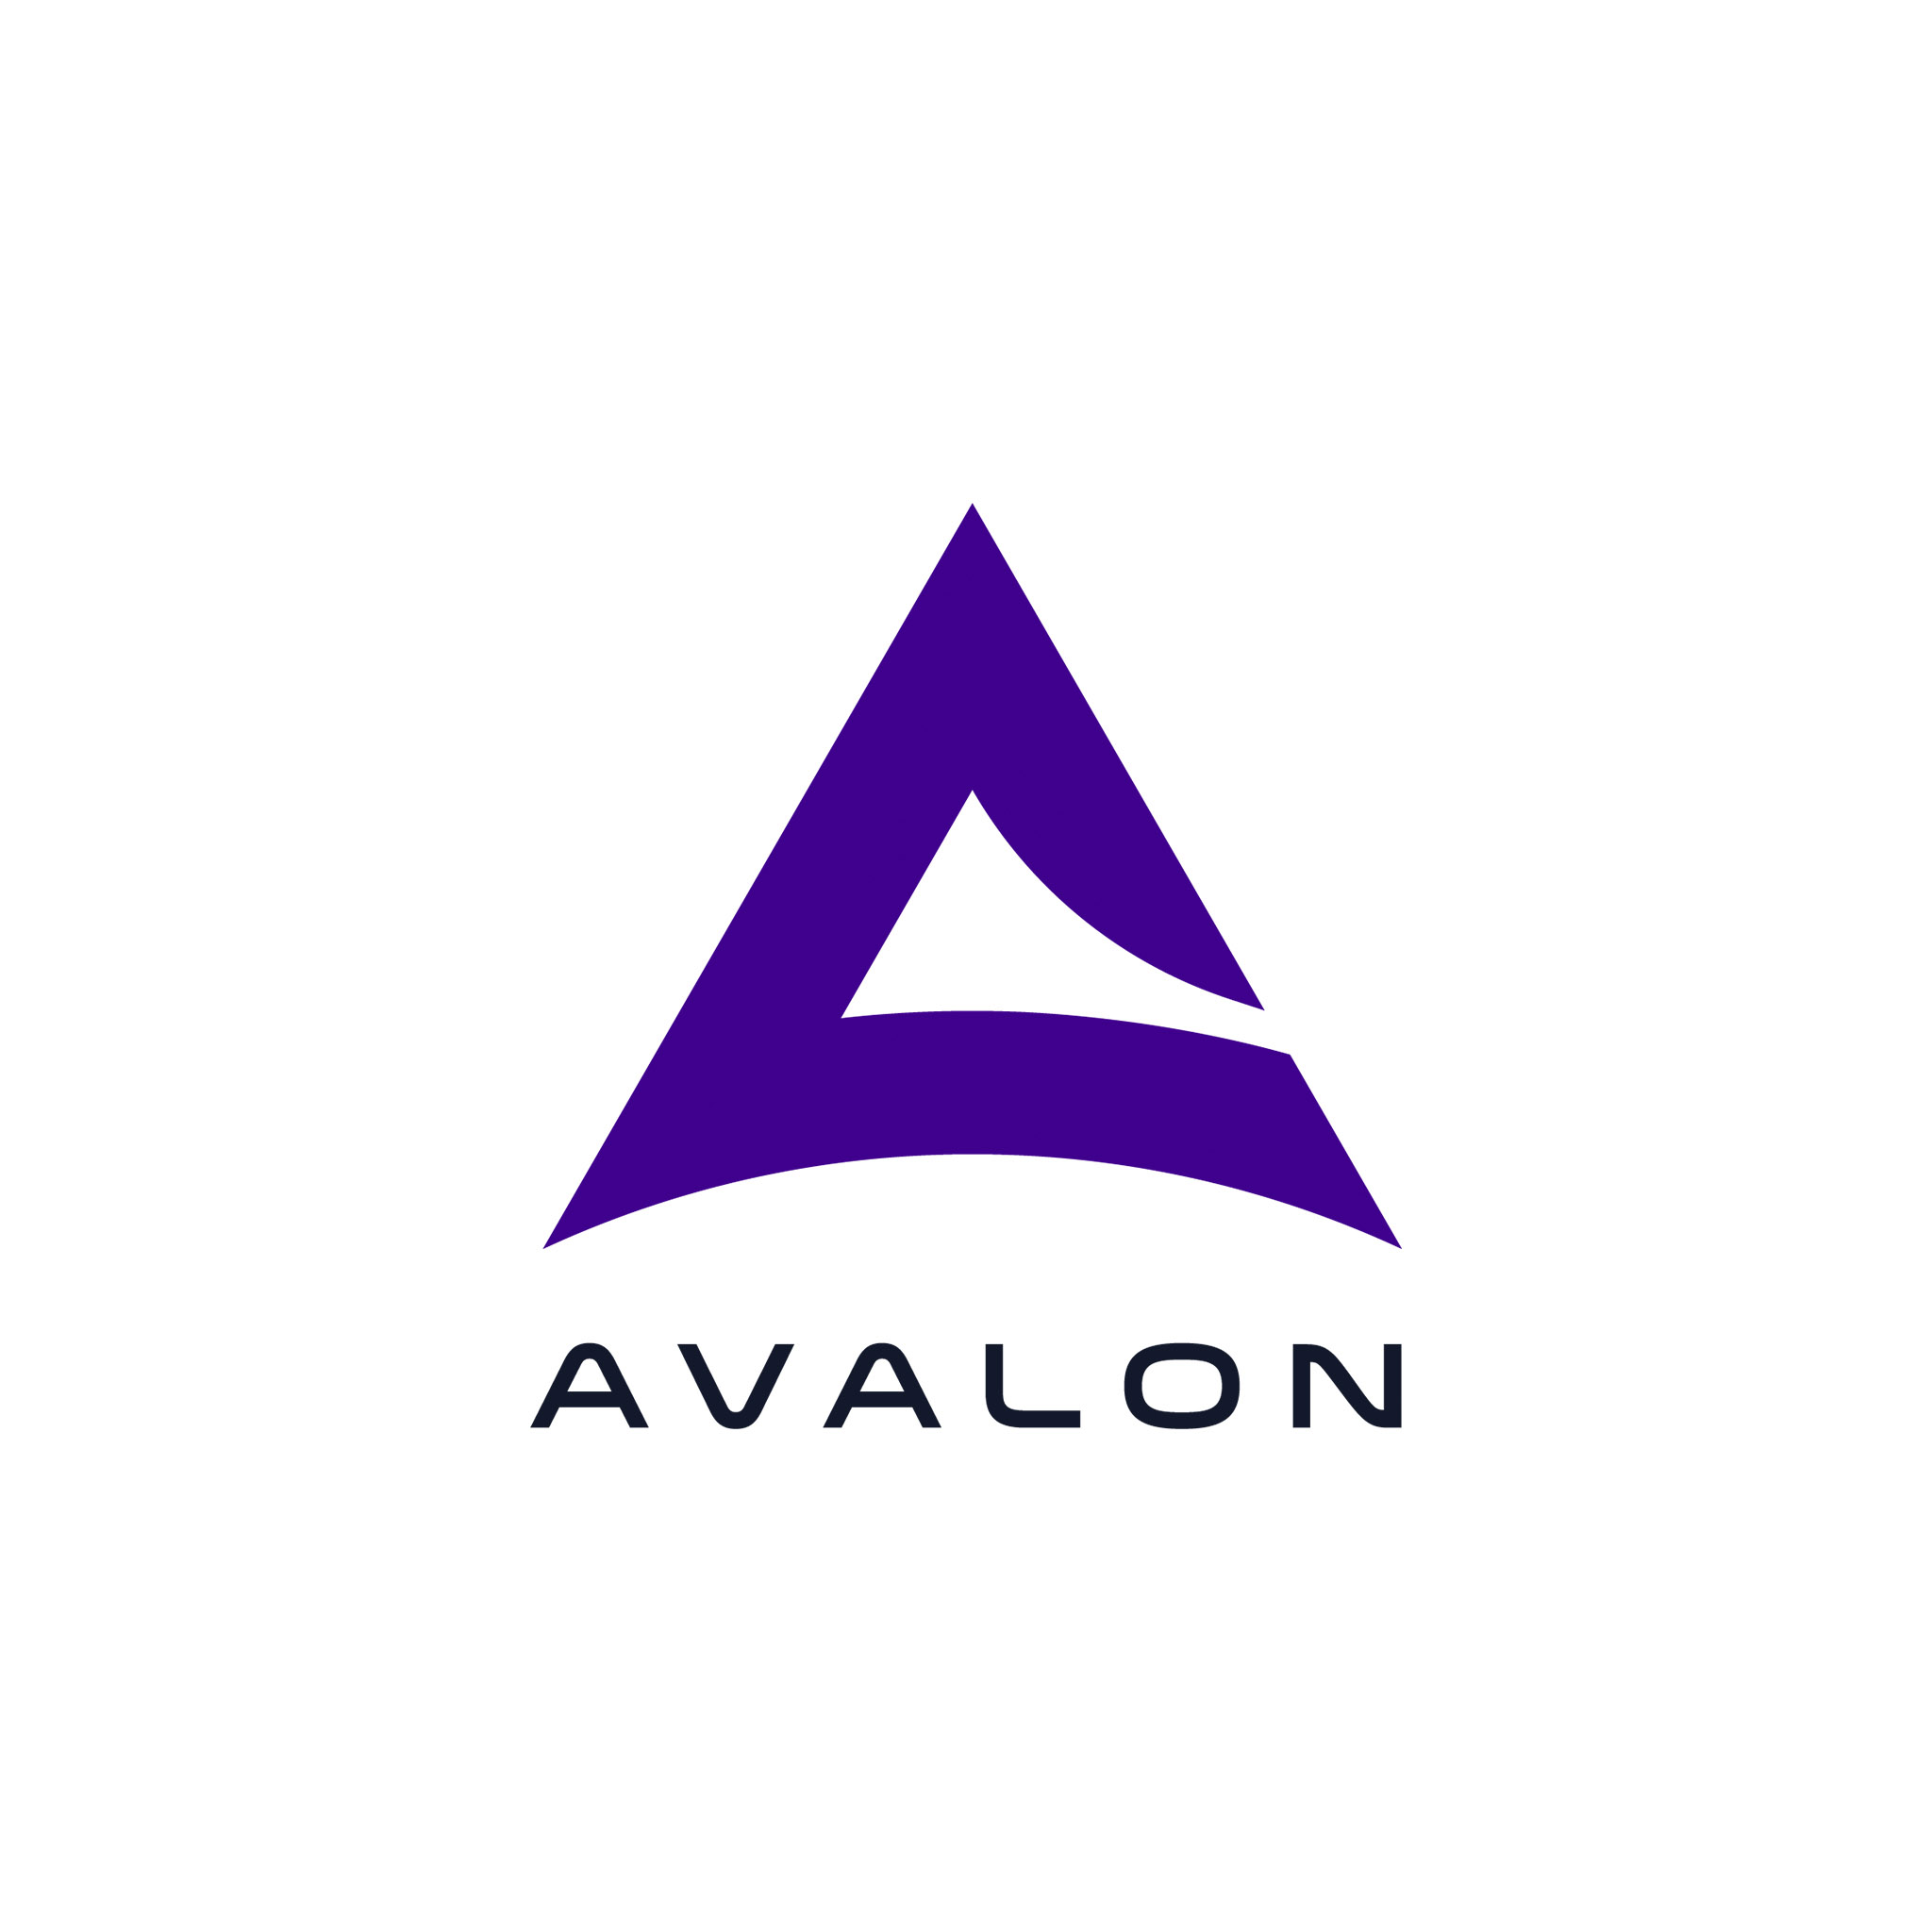 Avalon Film Productions